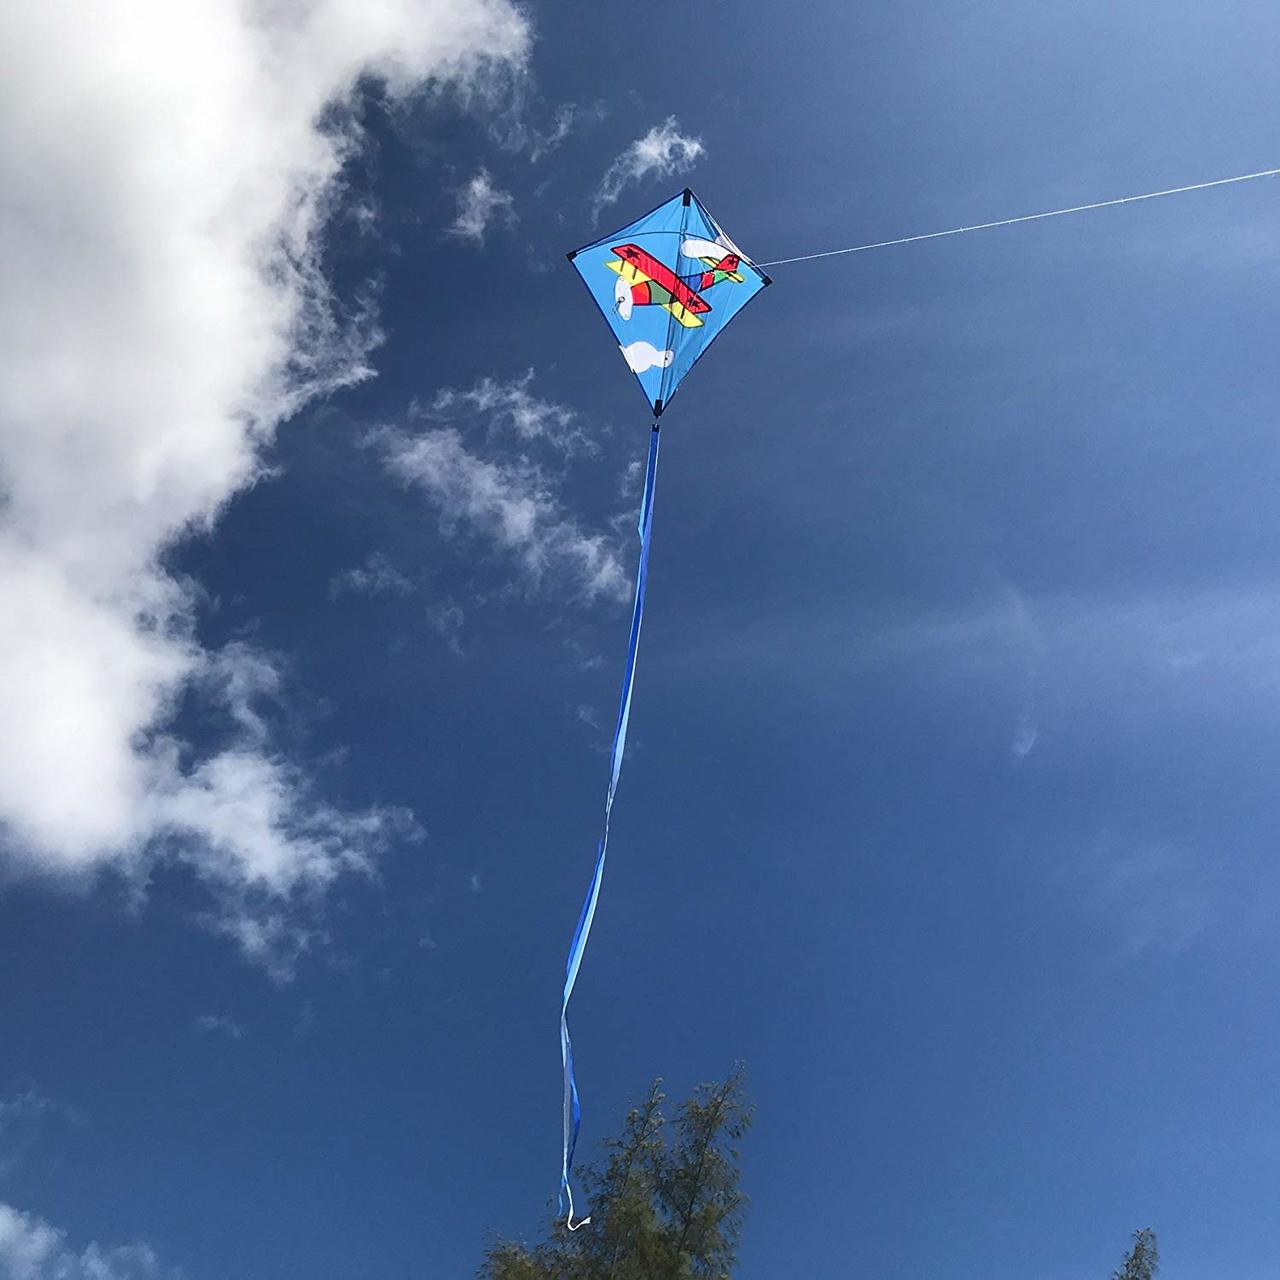 "30"" Bi-Plane Diamond Kite"